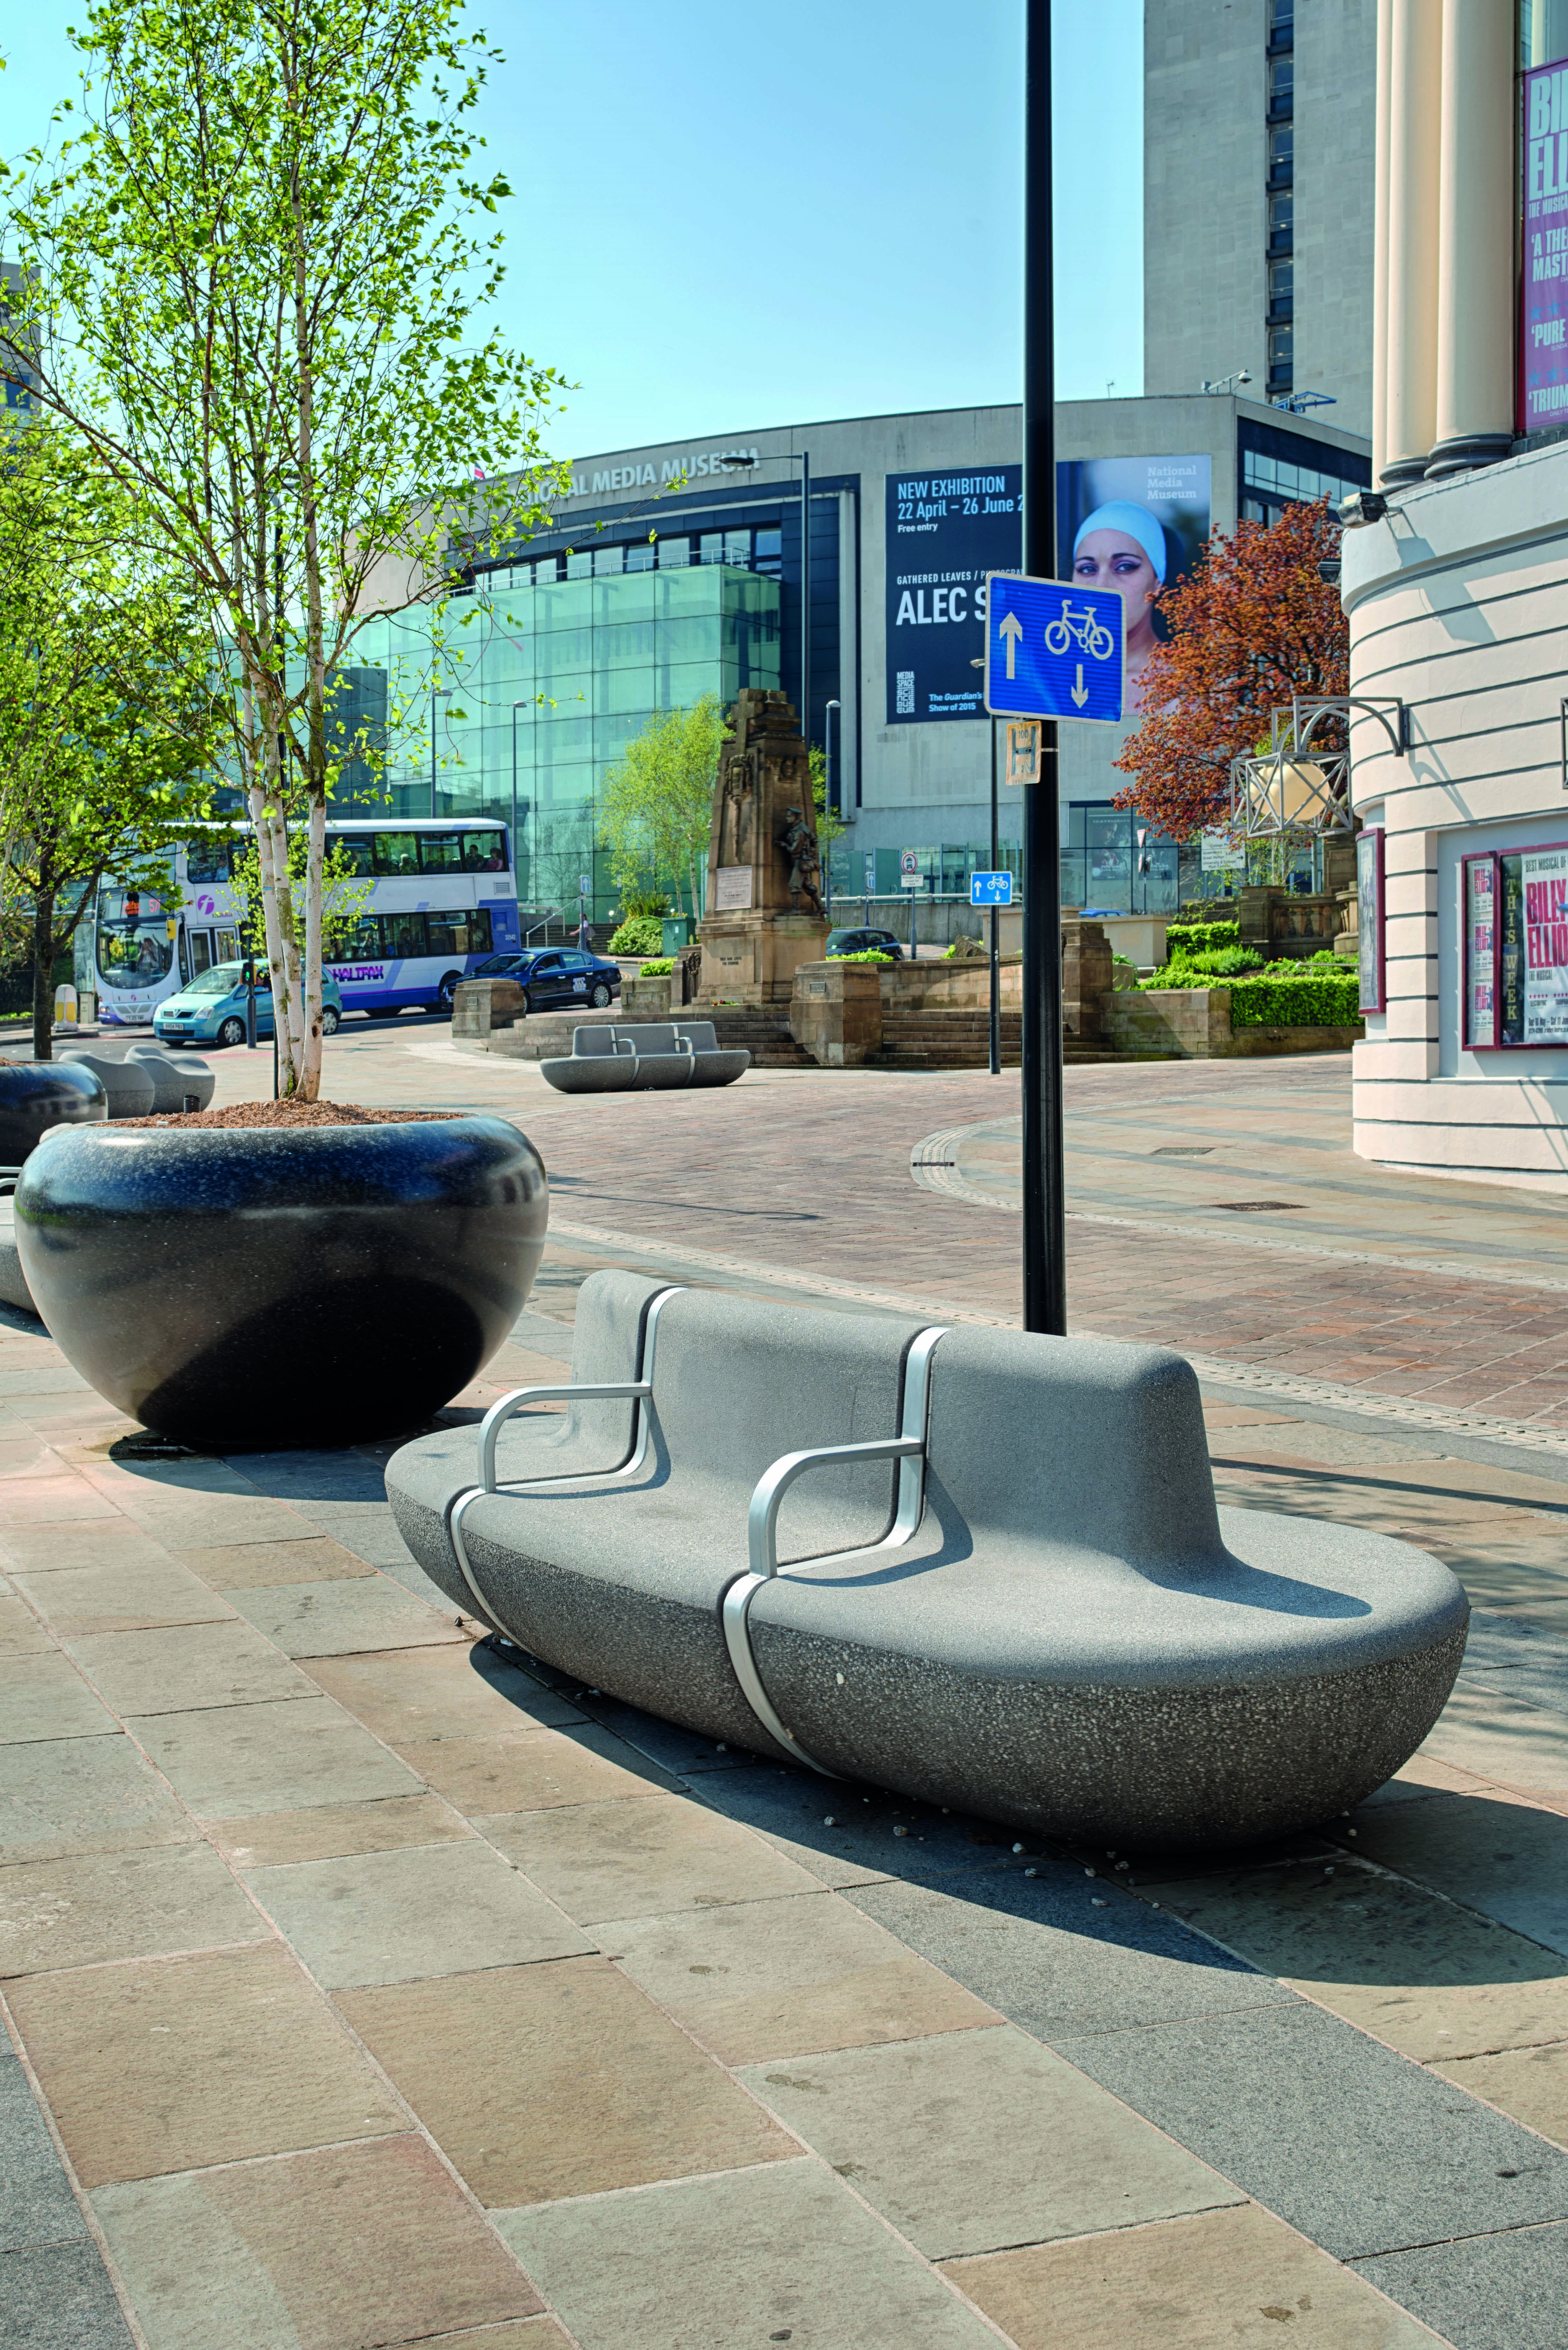 Landscape protection seating in front of the Alhambra theatre